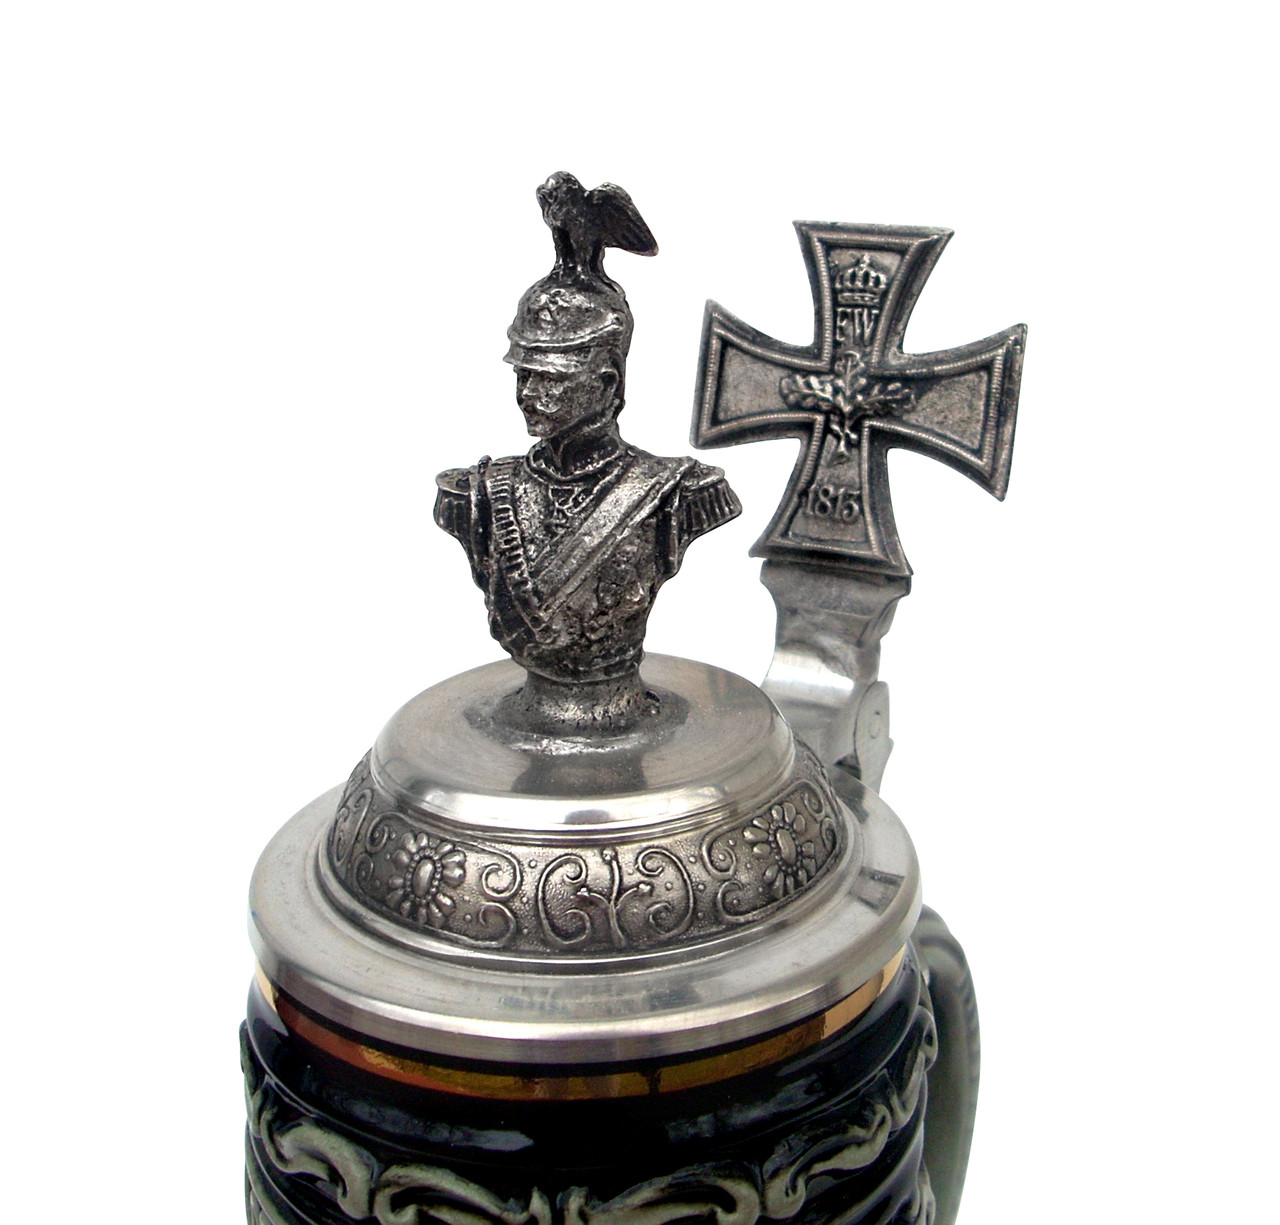 Kaiser Wilhelm II Bust and German Iron Cross